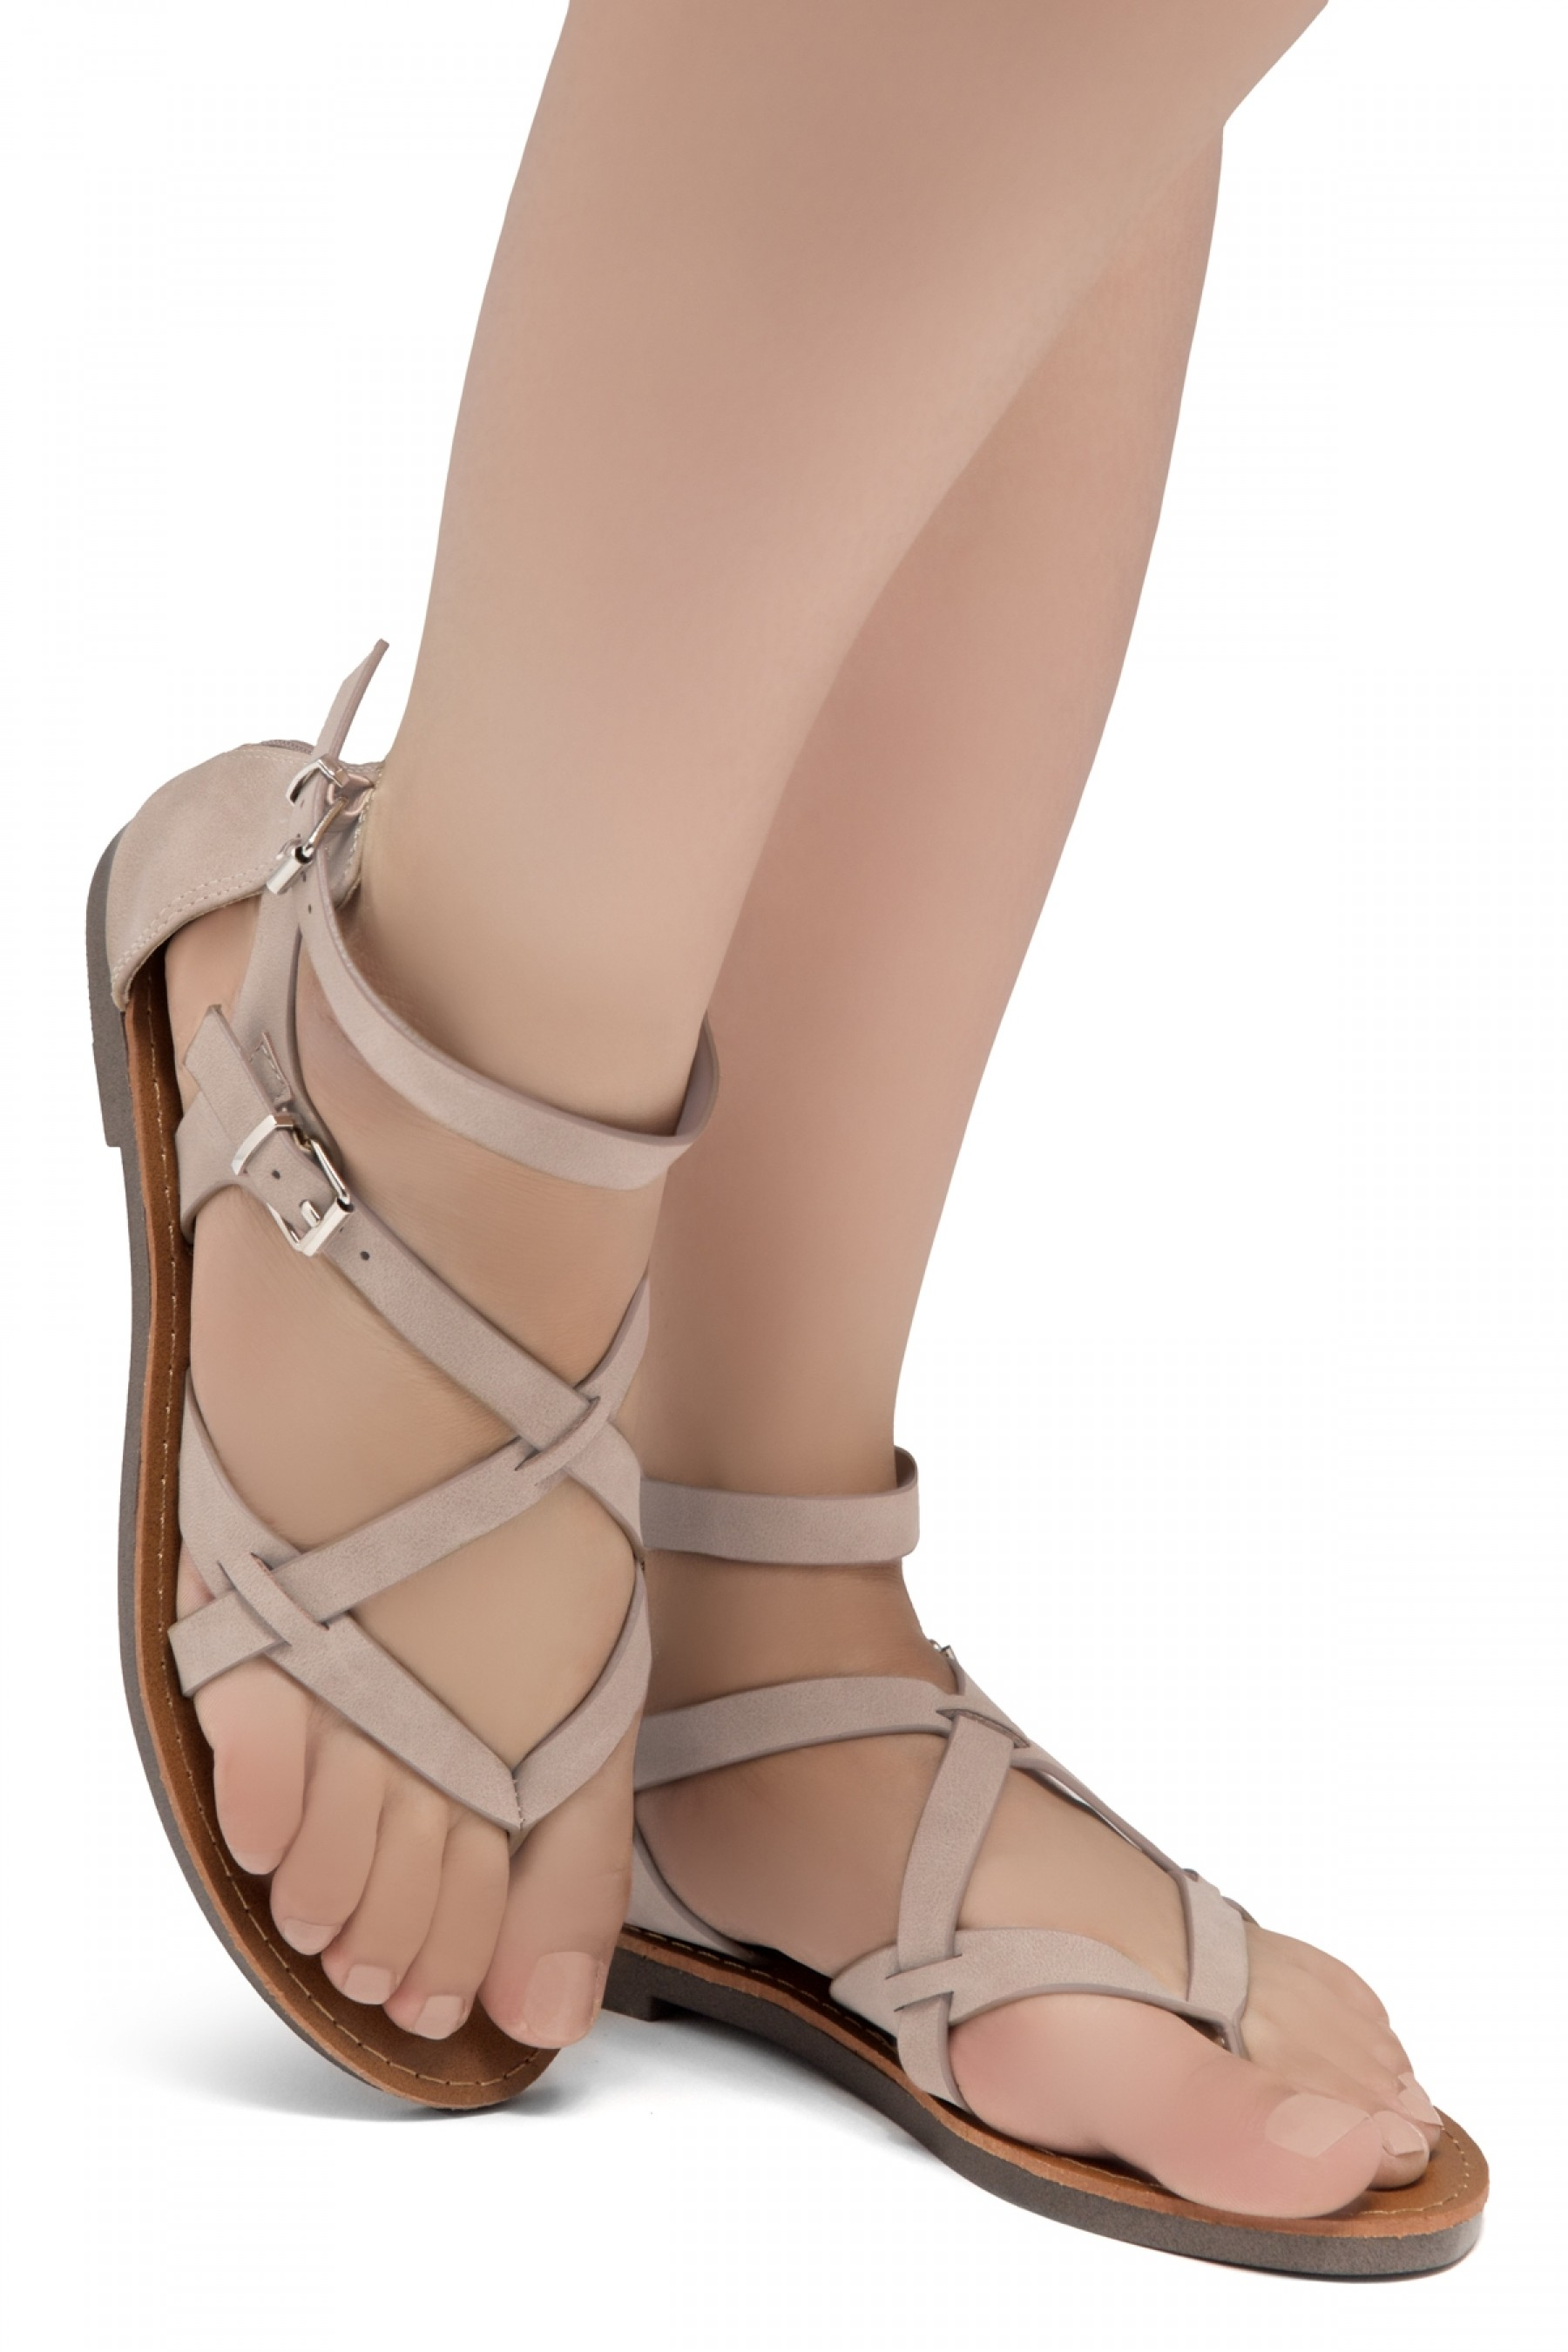 ShoeLand SL-Monaco Women's Open Toes Gladiator Flat Sandals Ankle Strap Thong Shoes(Nude)